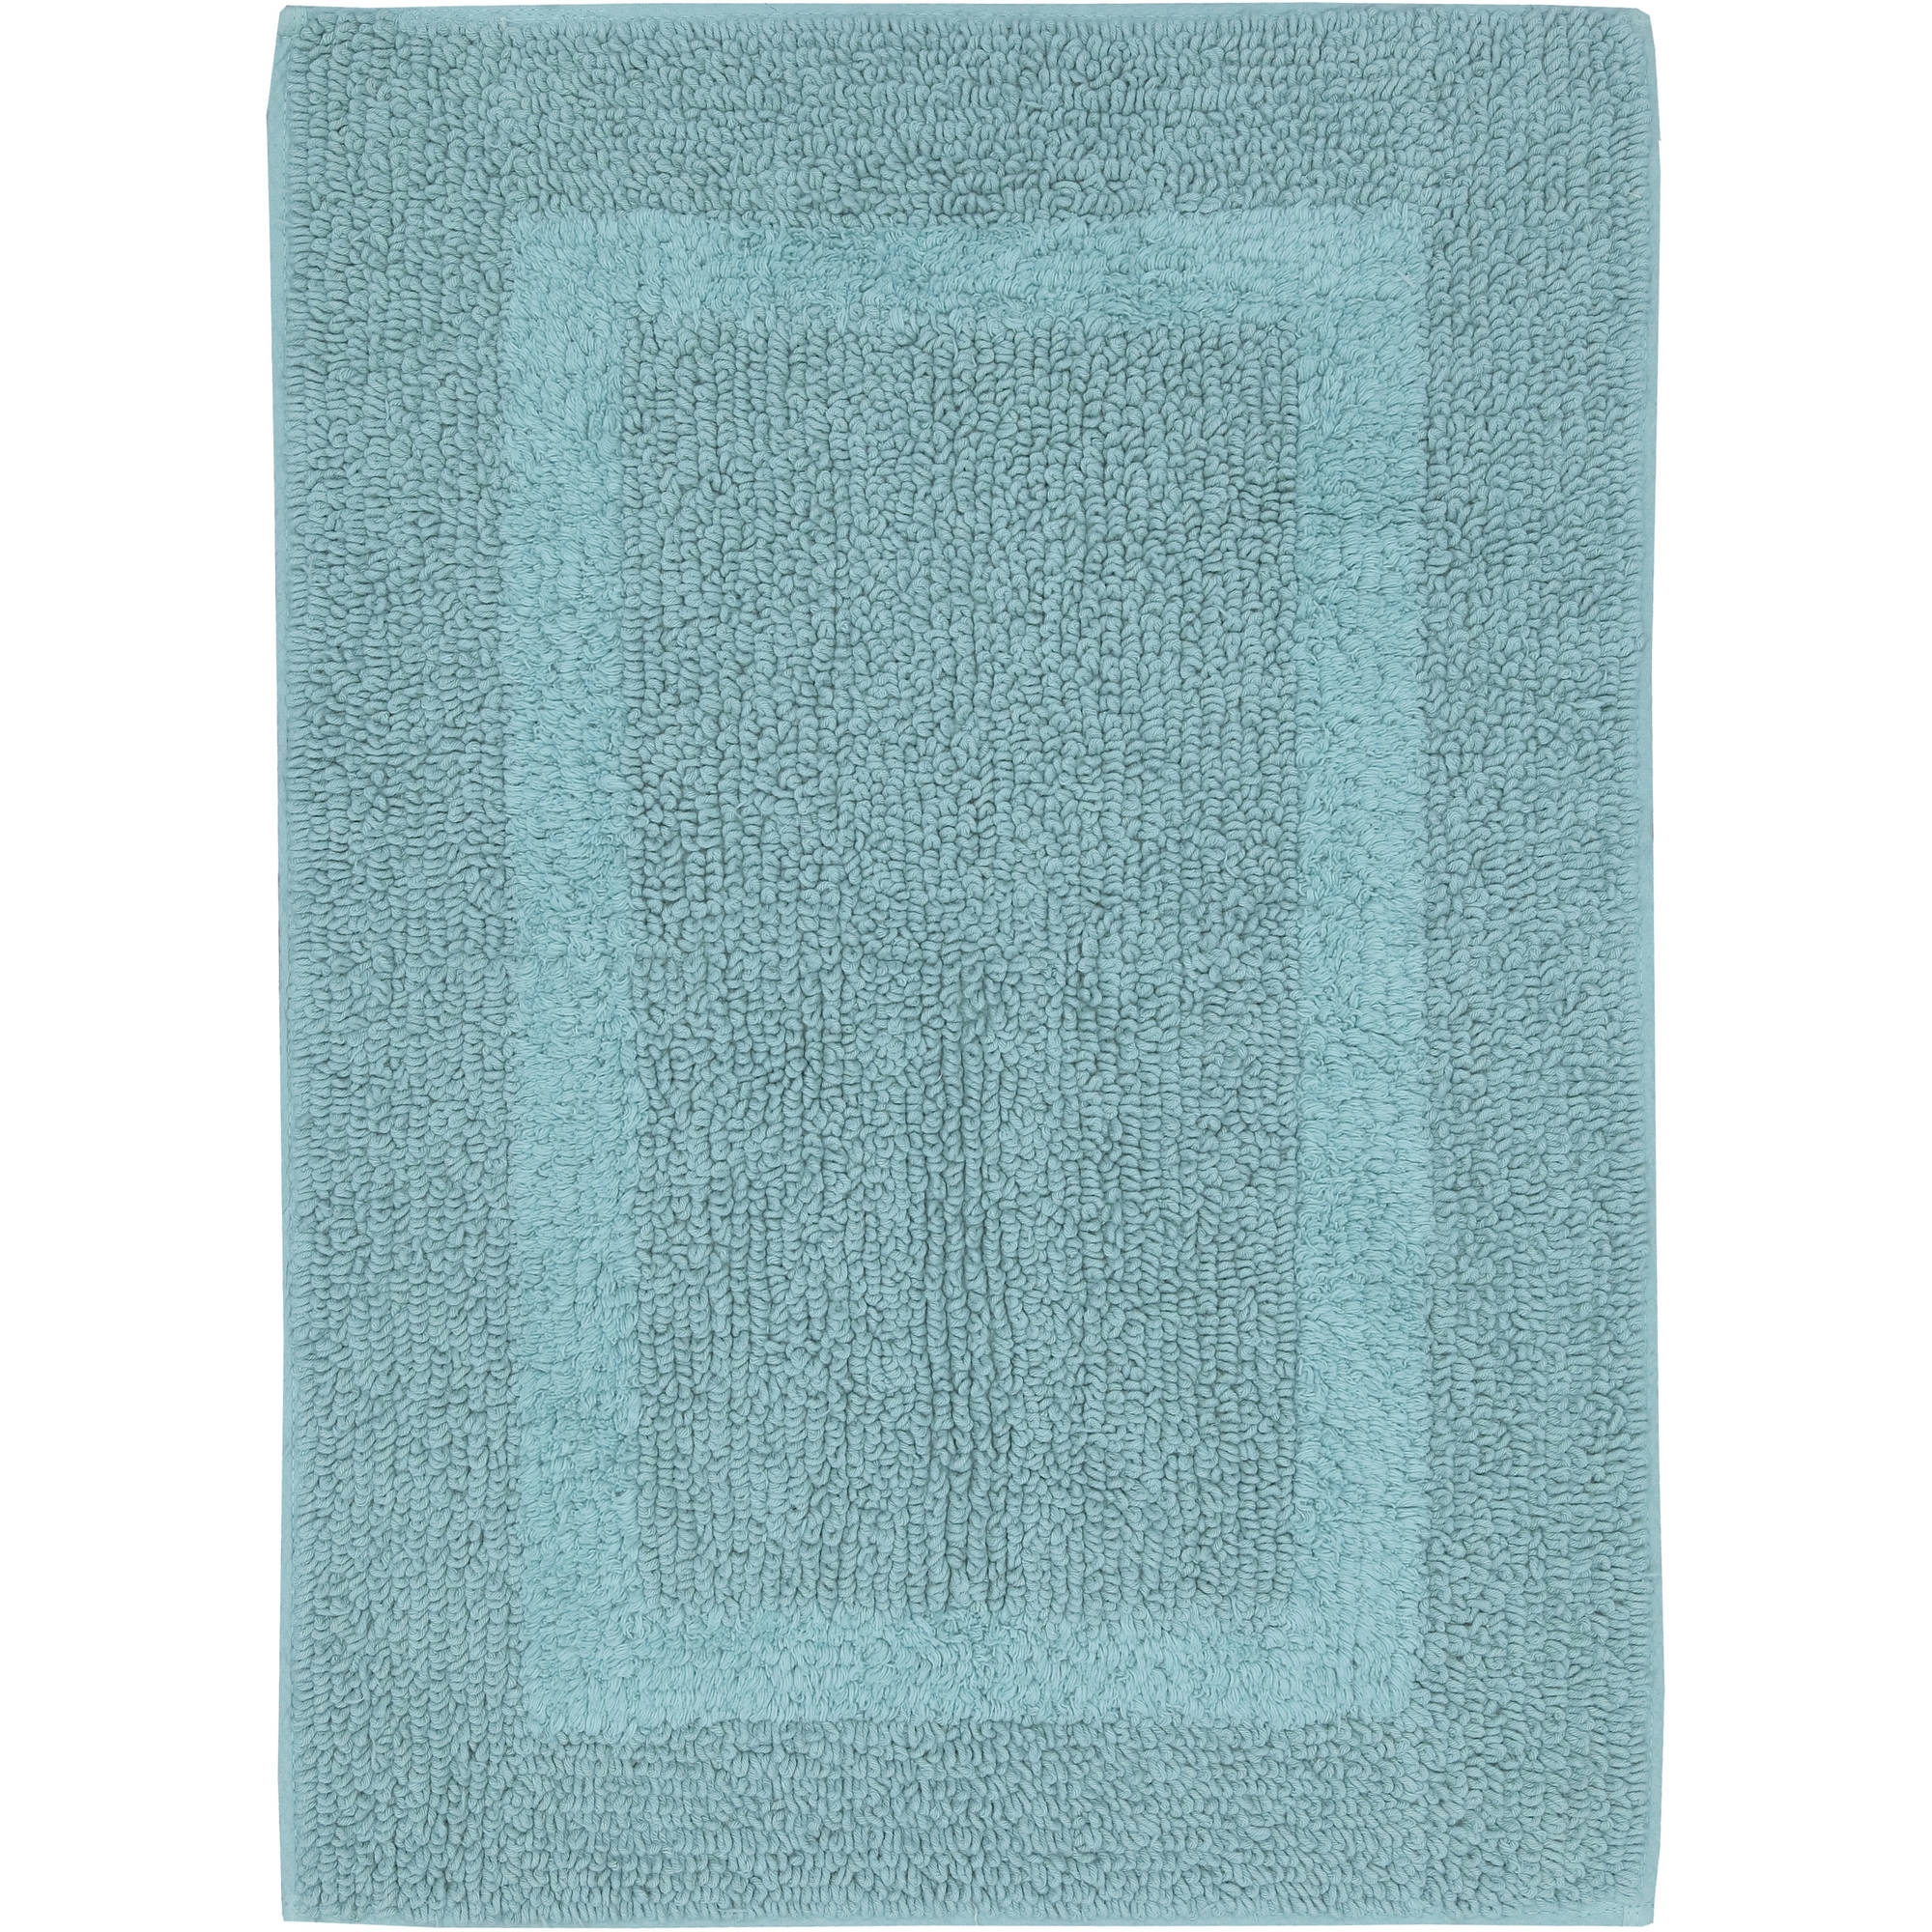 Permalink to Peacock Blue Bathroom Rugs